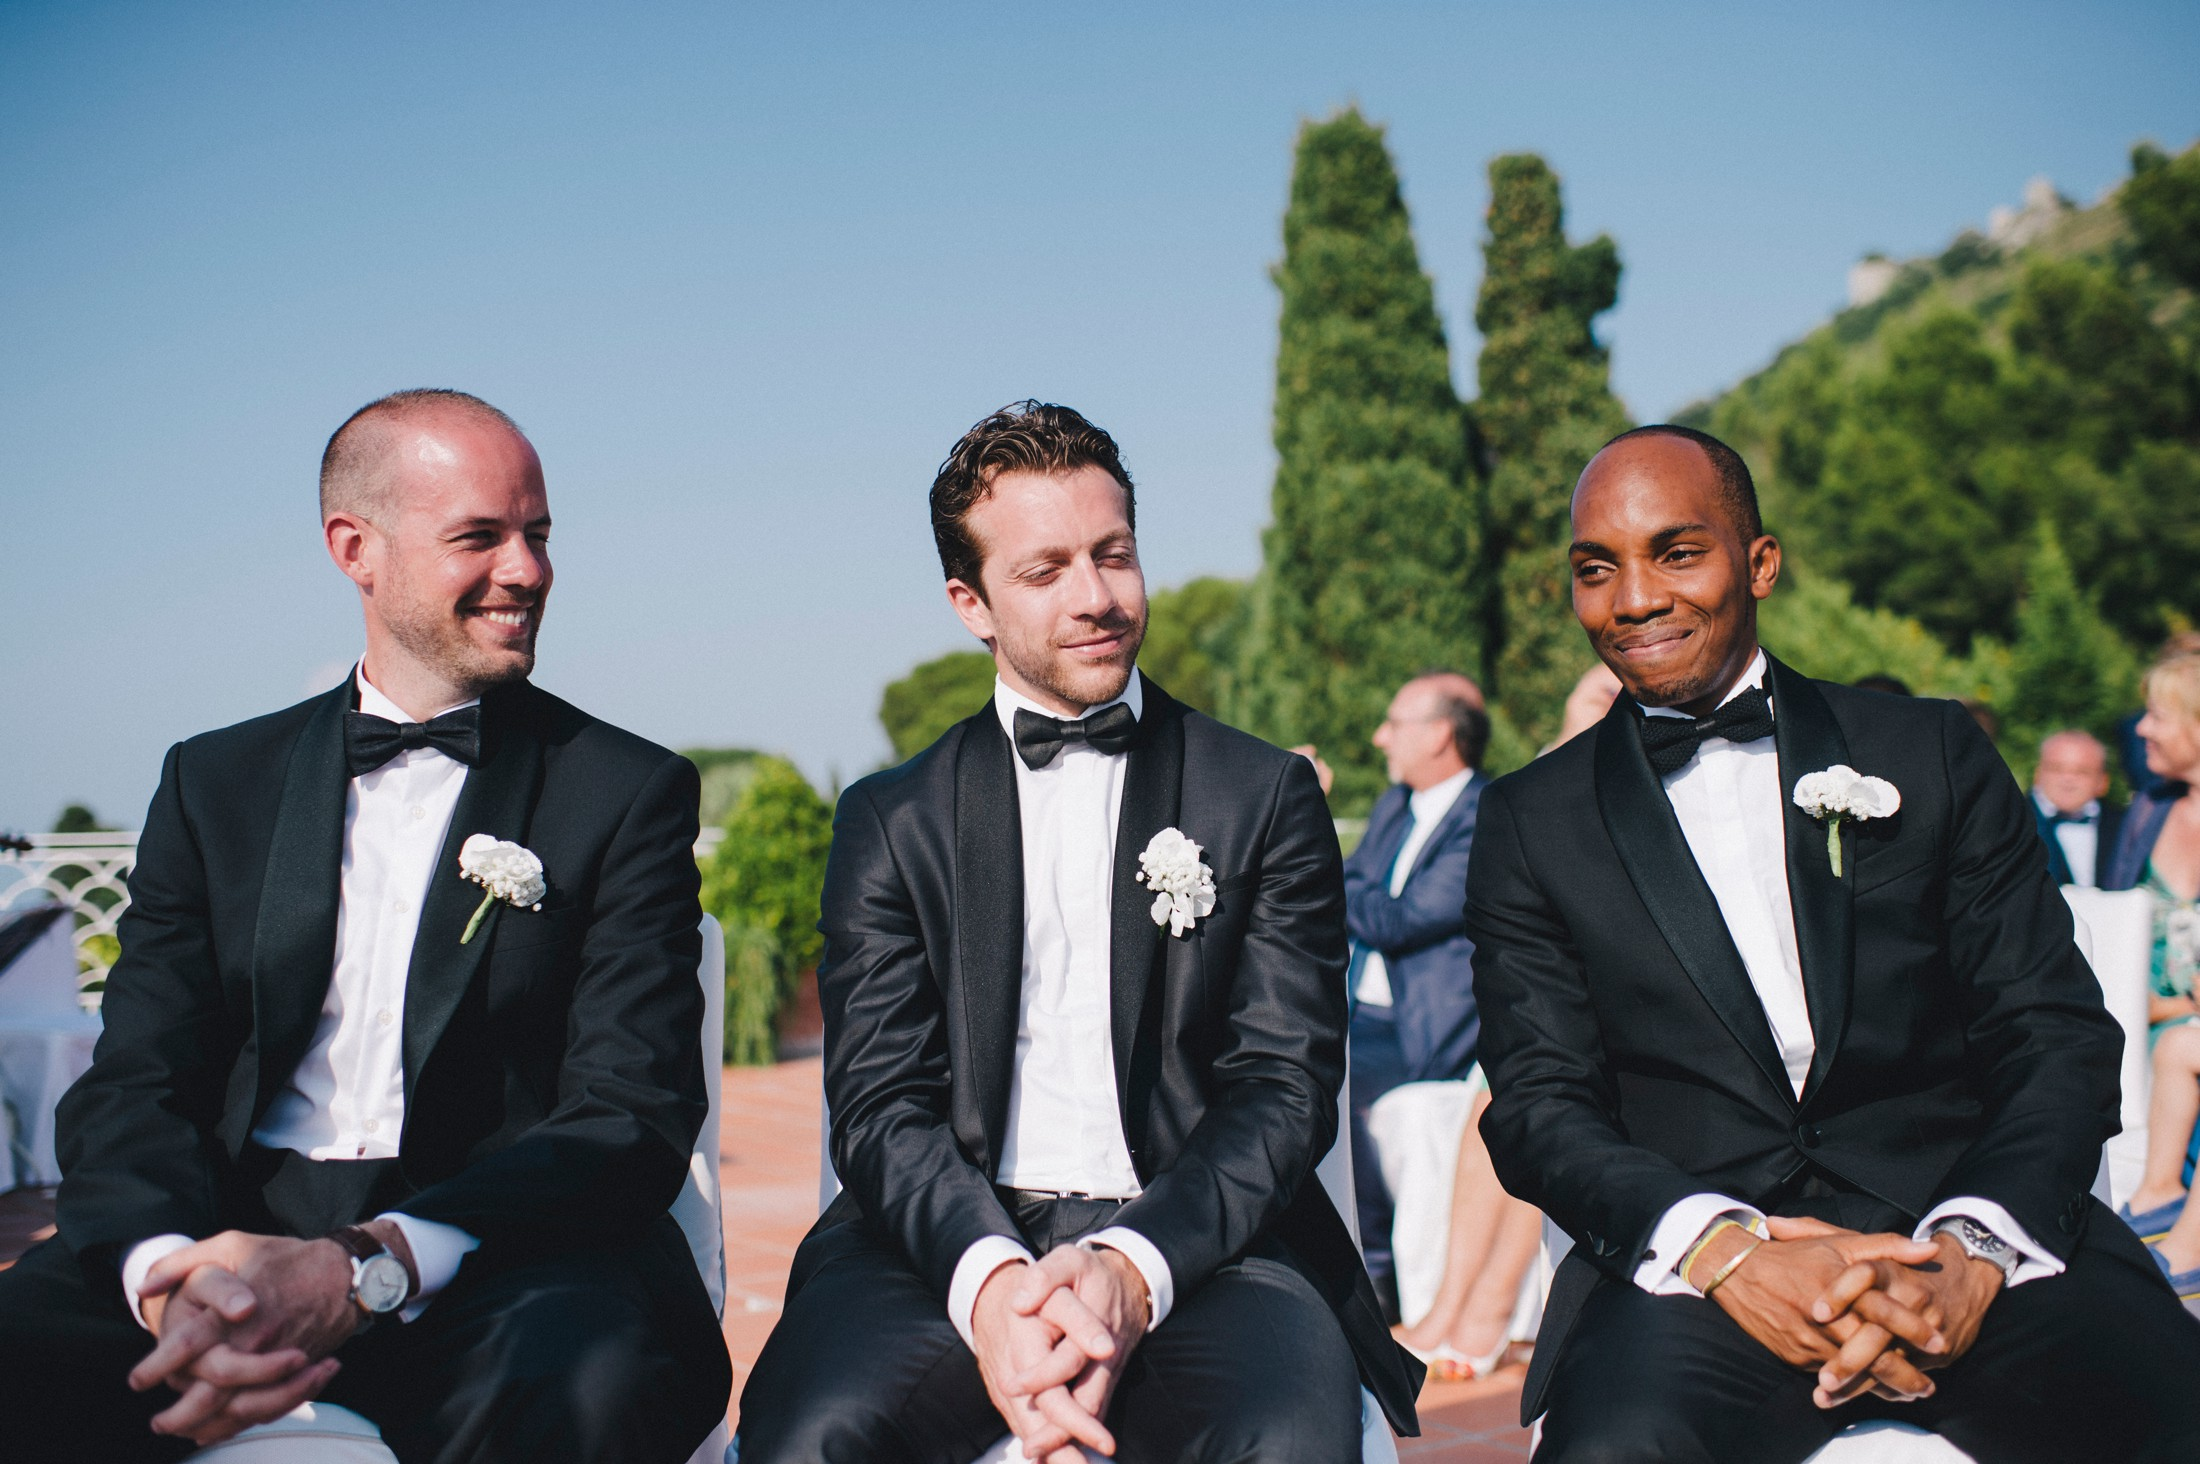 best men during the wedding ceremony